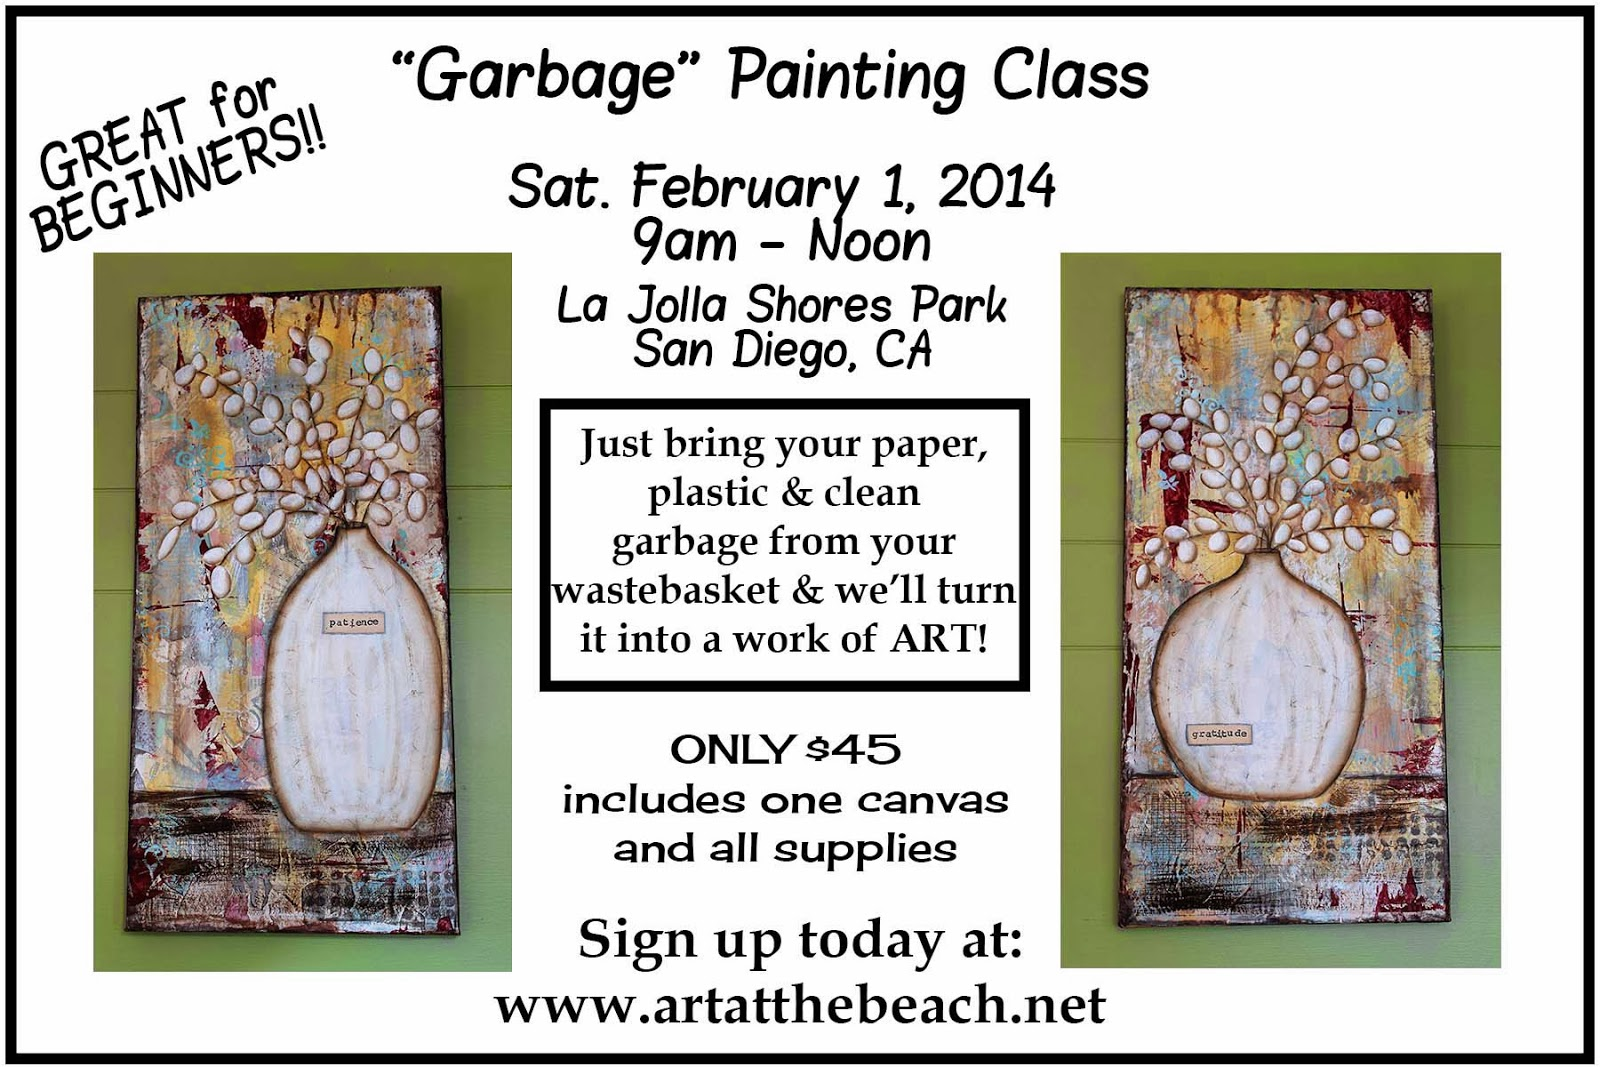 Garbage Painting Class, Beginner's Mixed Media Arylics, Taught by Sue Allemand, www.artatthebeach.net